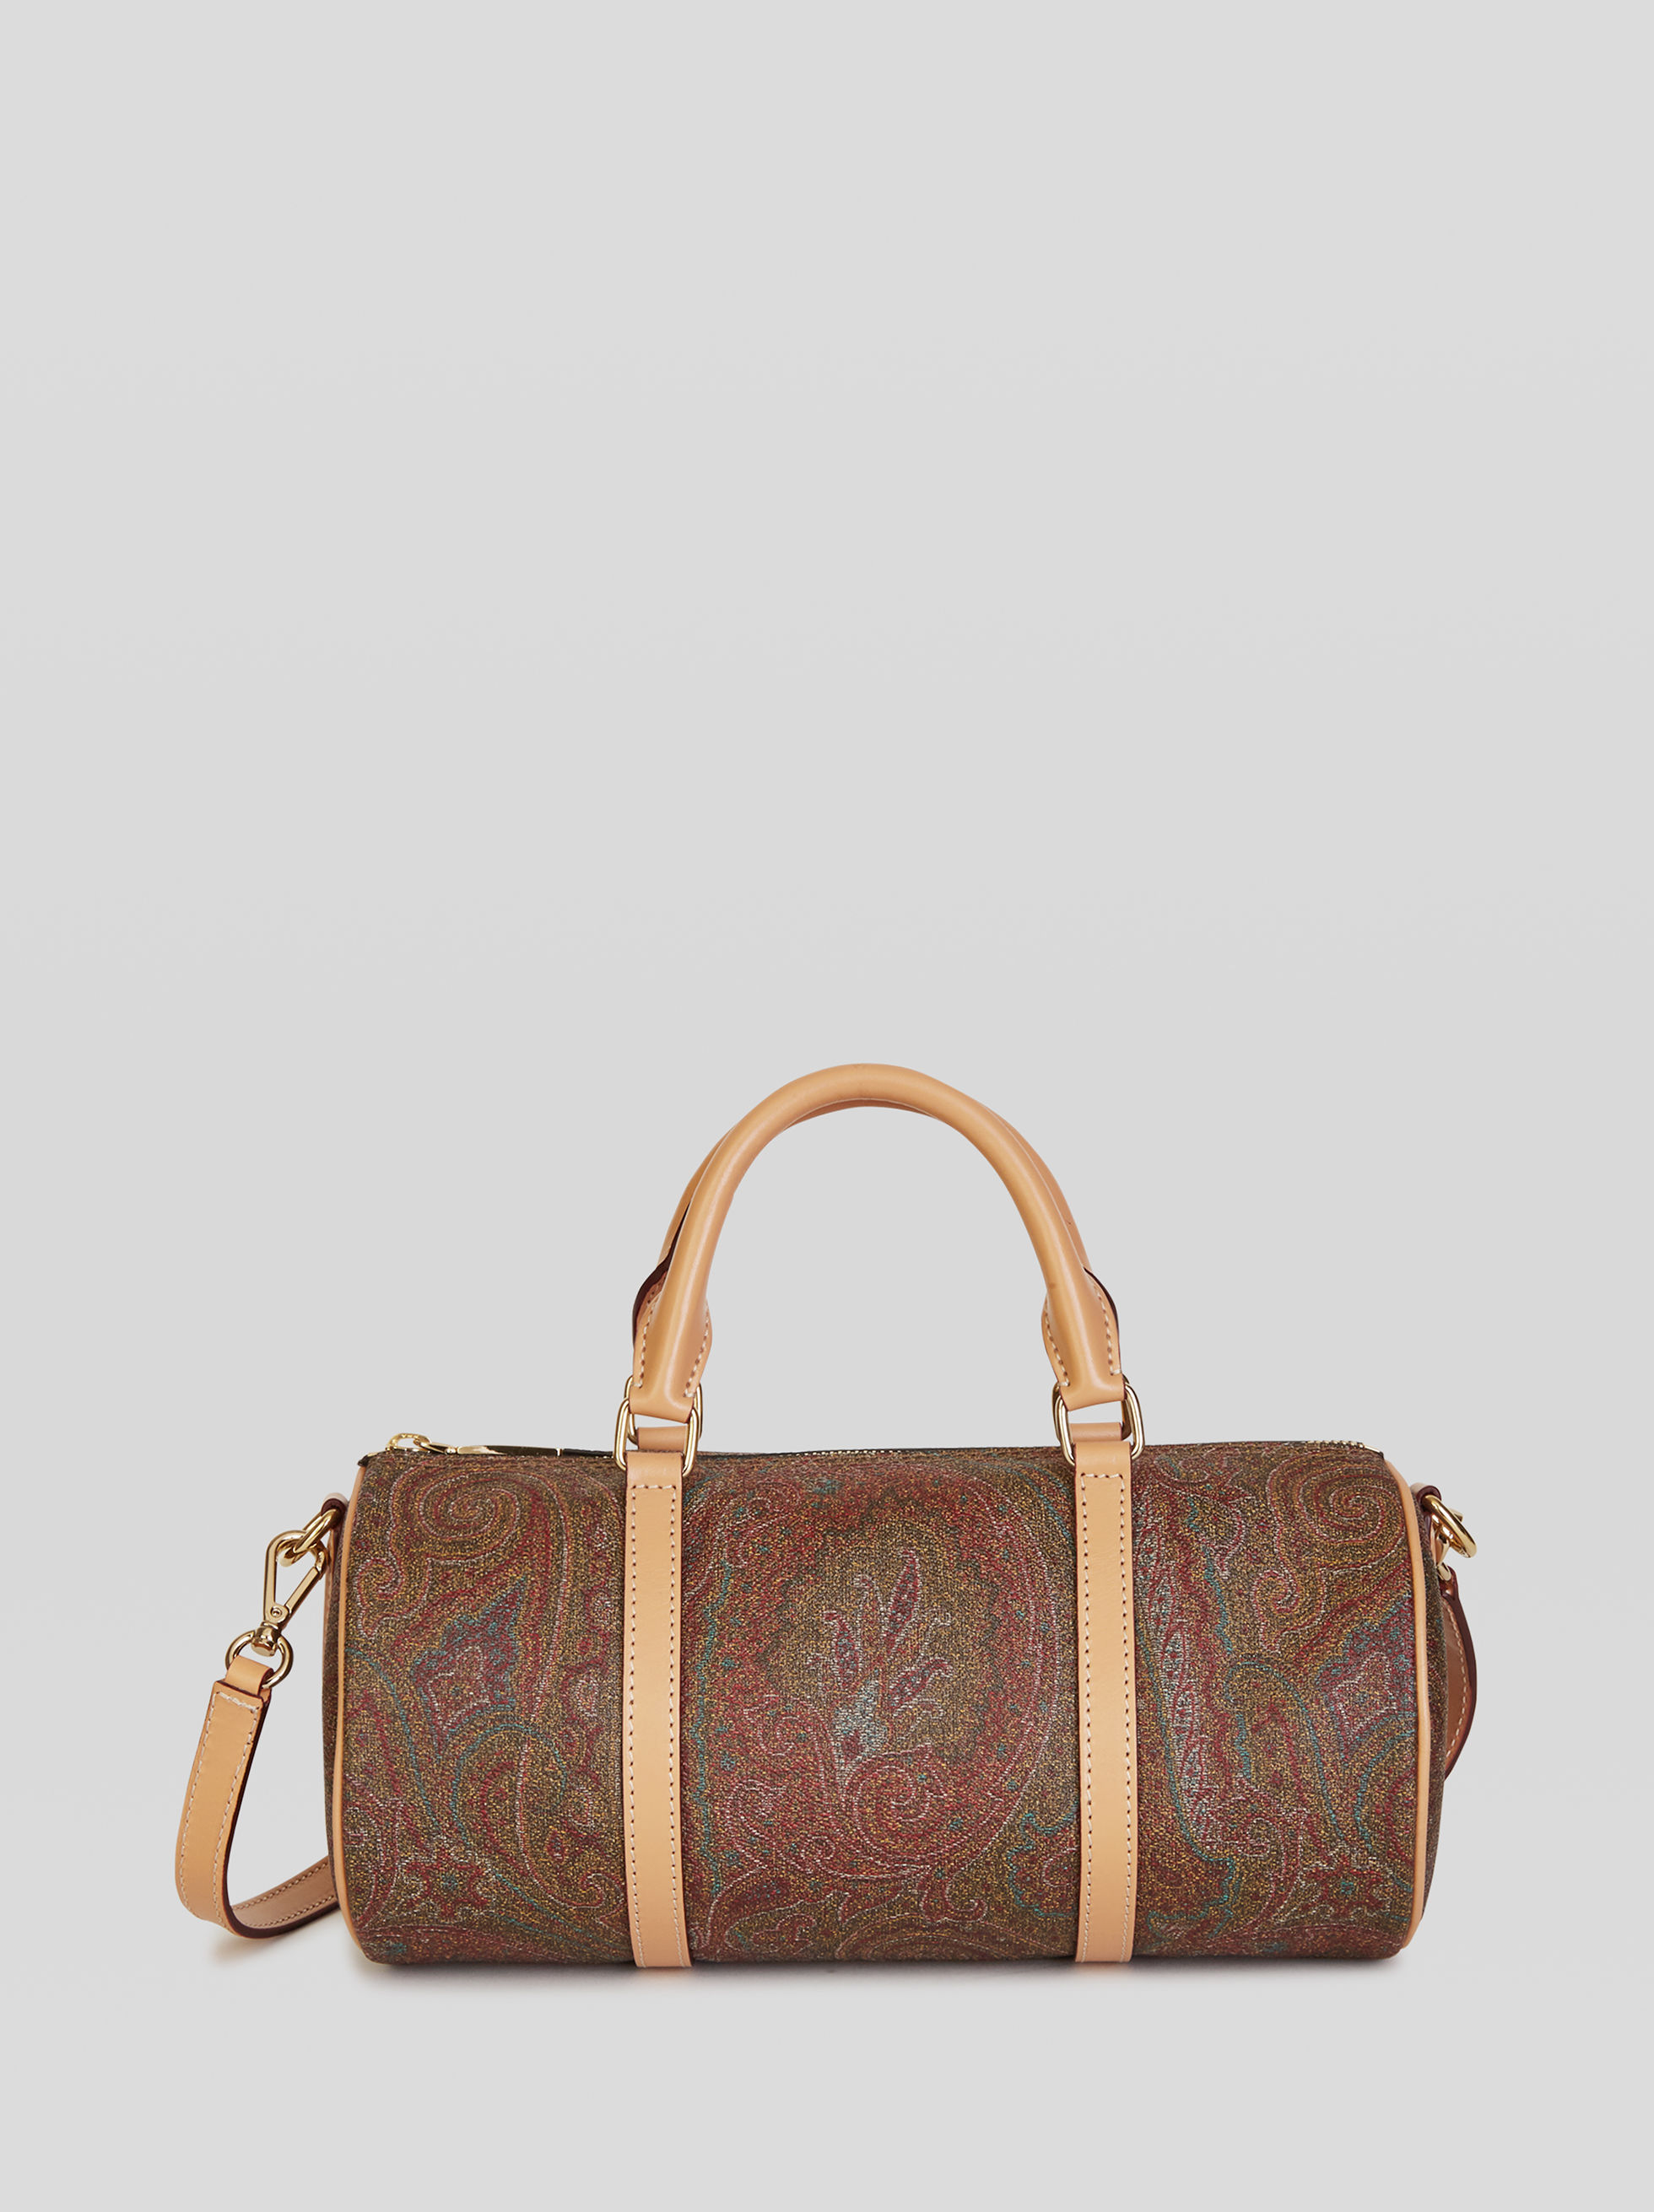 PAISLEY JACQUARD BAULETTO TASCHE